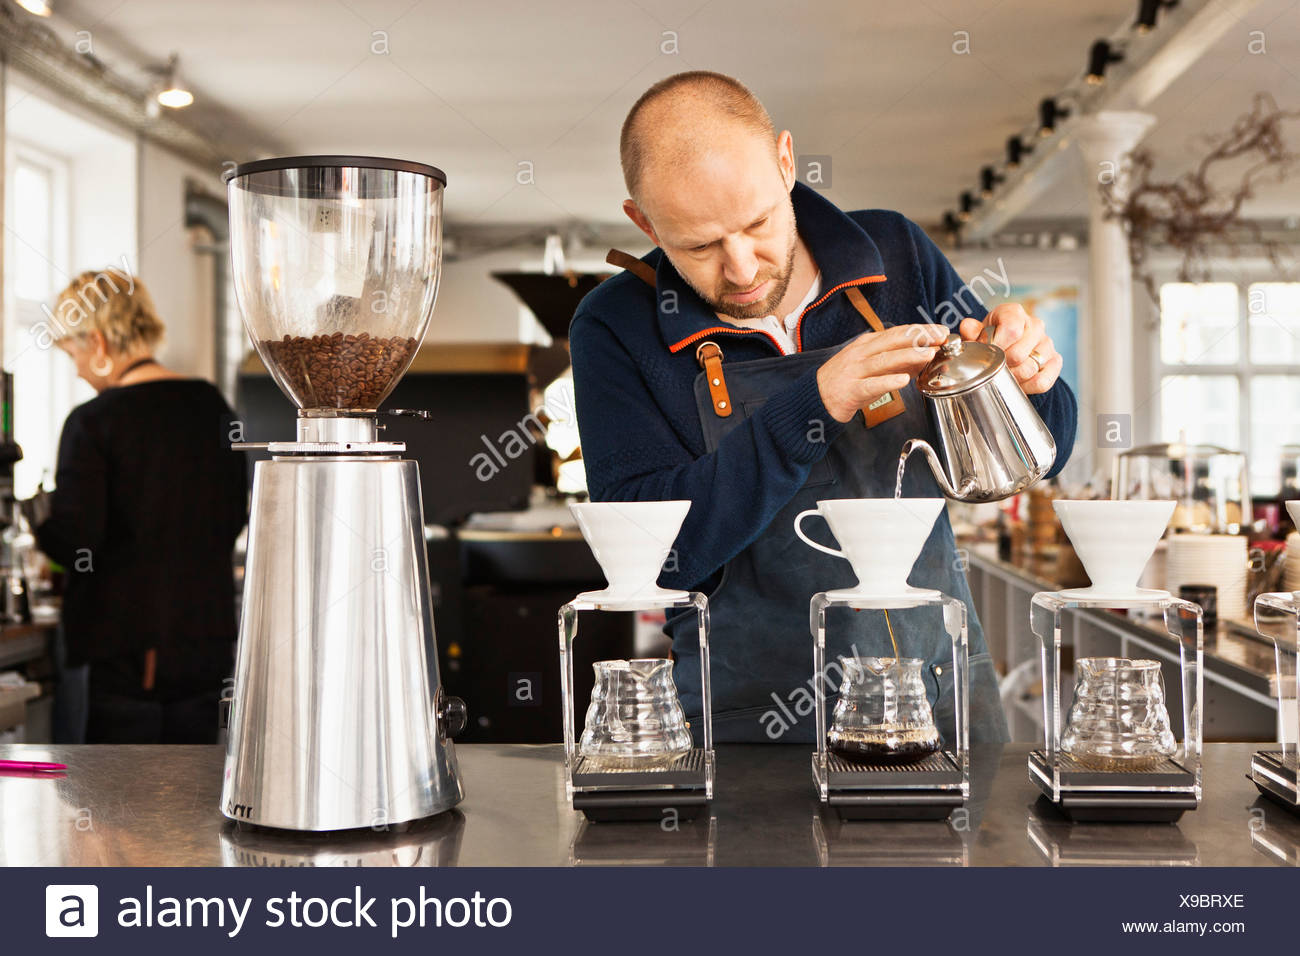 Barista pouring boiling water into coffee filters - Stock Image